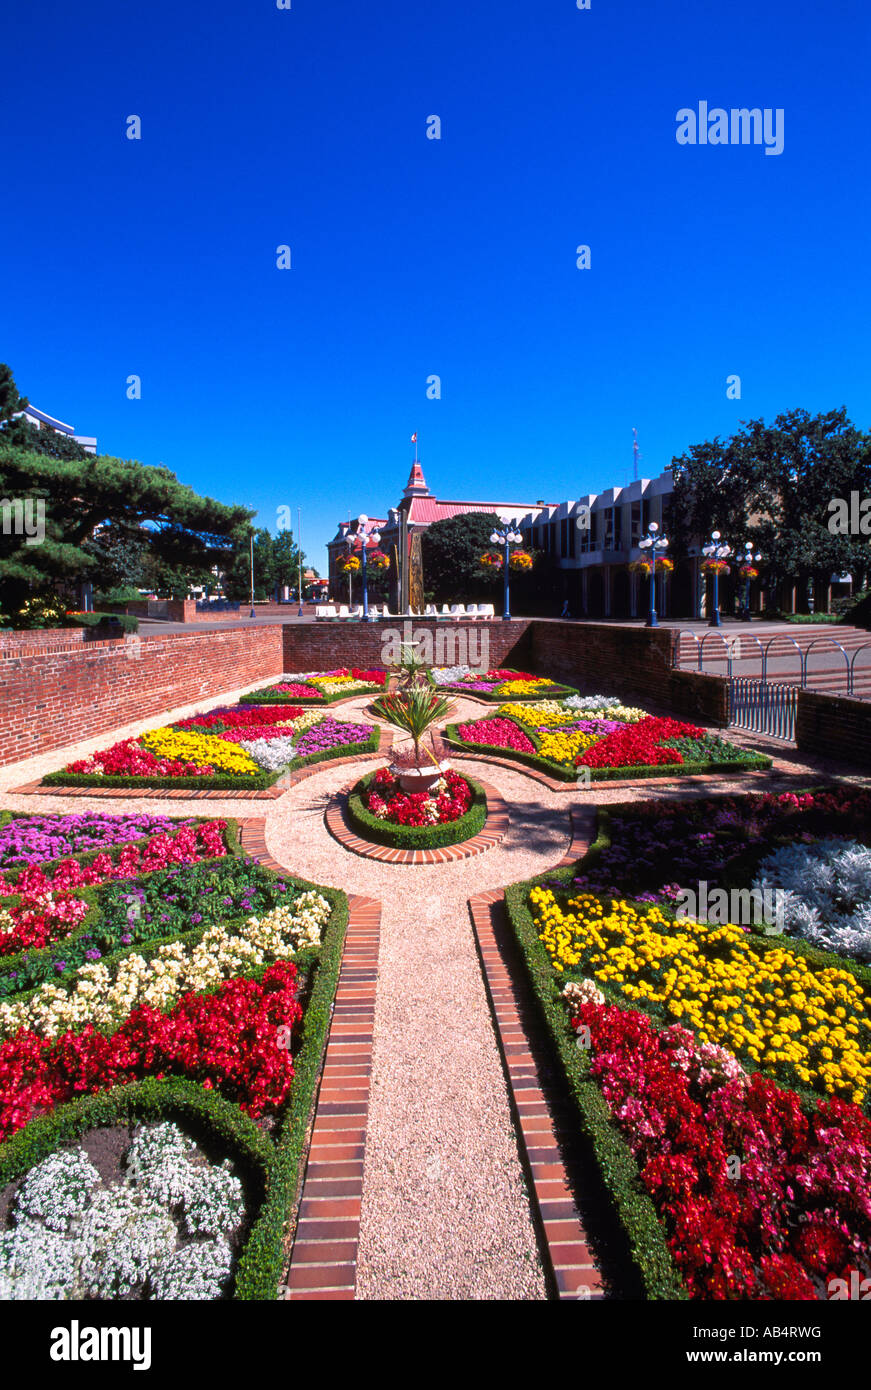 Victoria bc british columbia canada vancouver island flowers victoria bc british columbia canada vancouver island flowers in knot garden centennial square formal flower gardens thecheapjerseys Choice Image